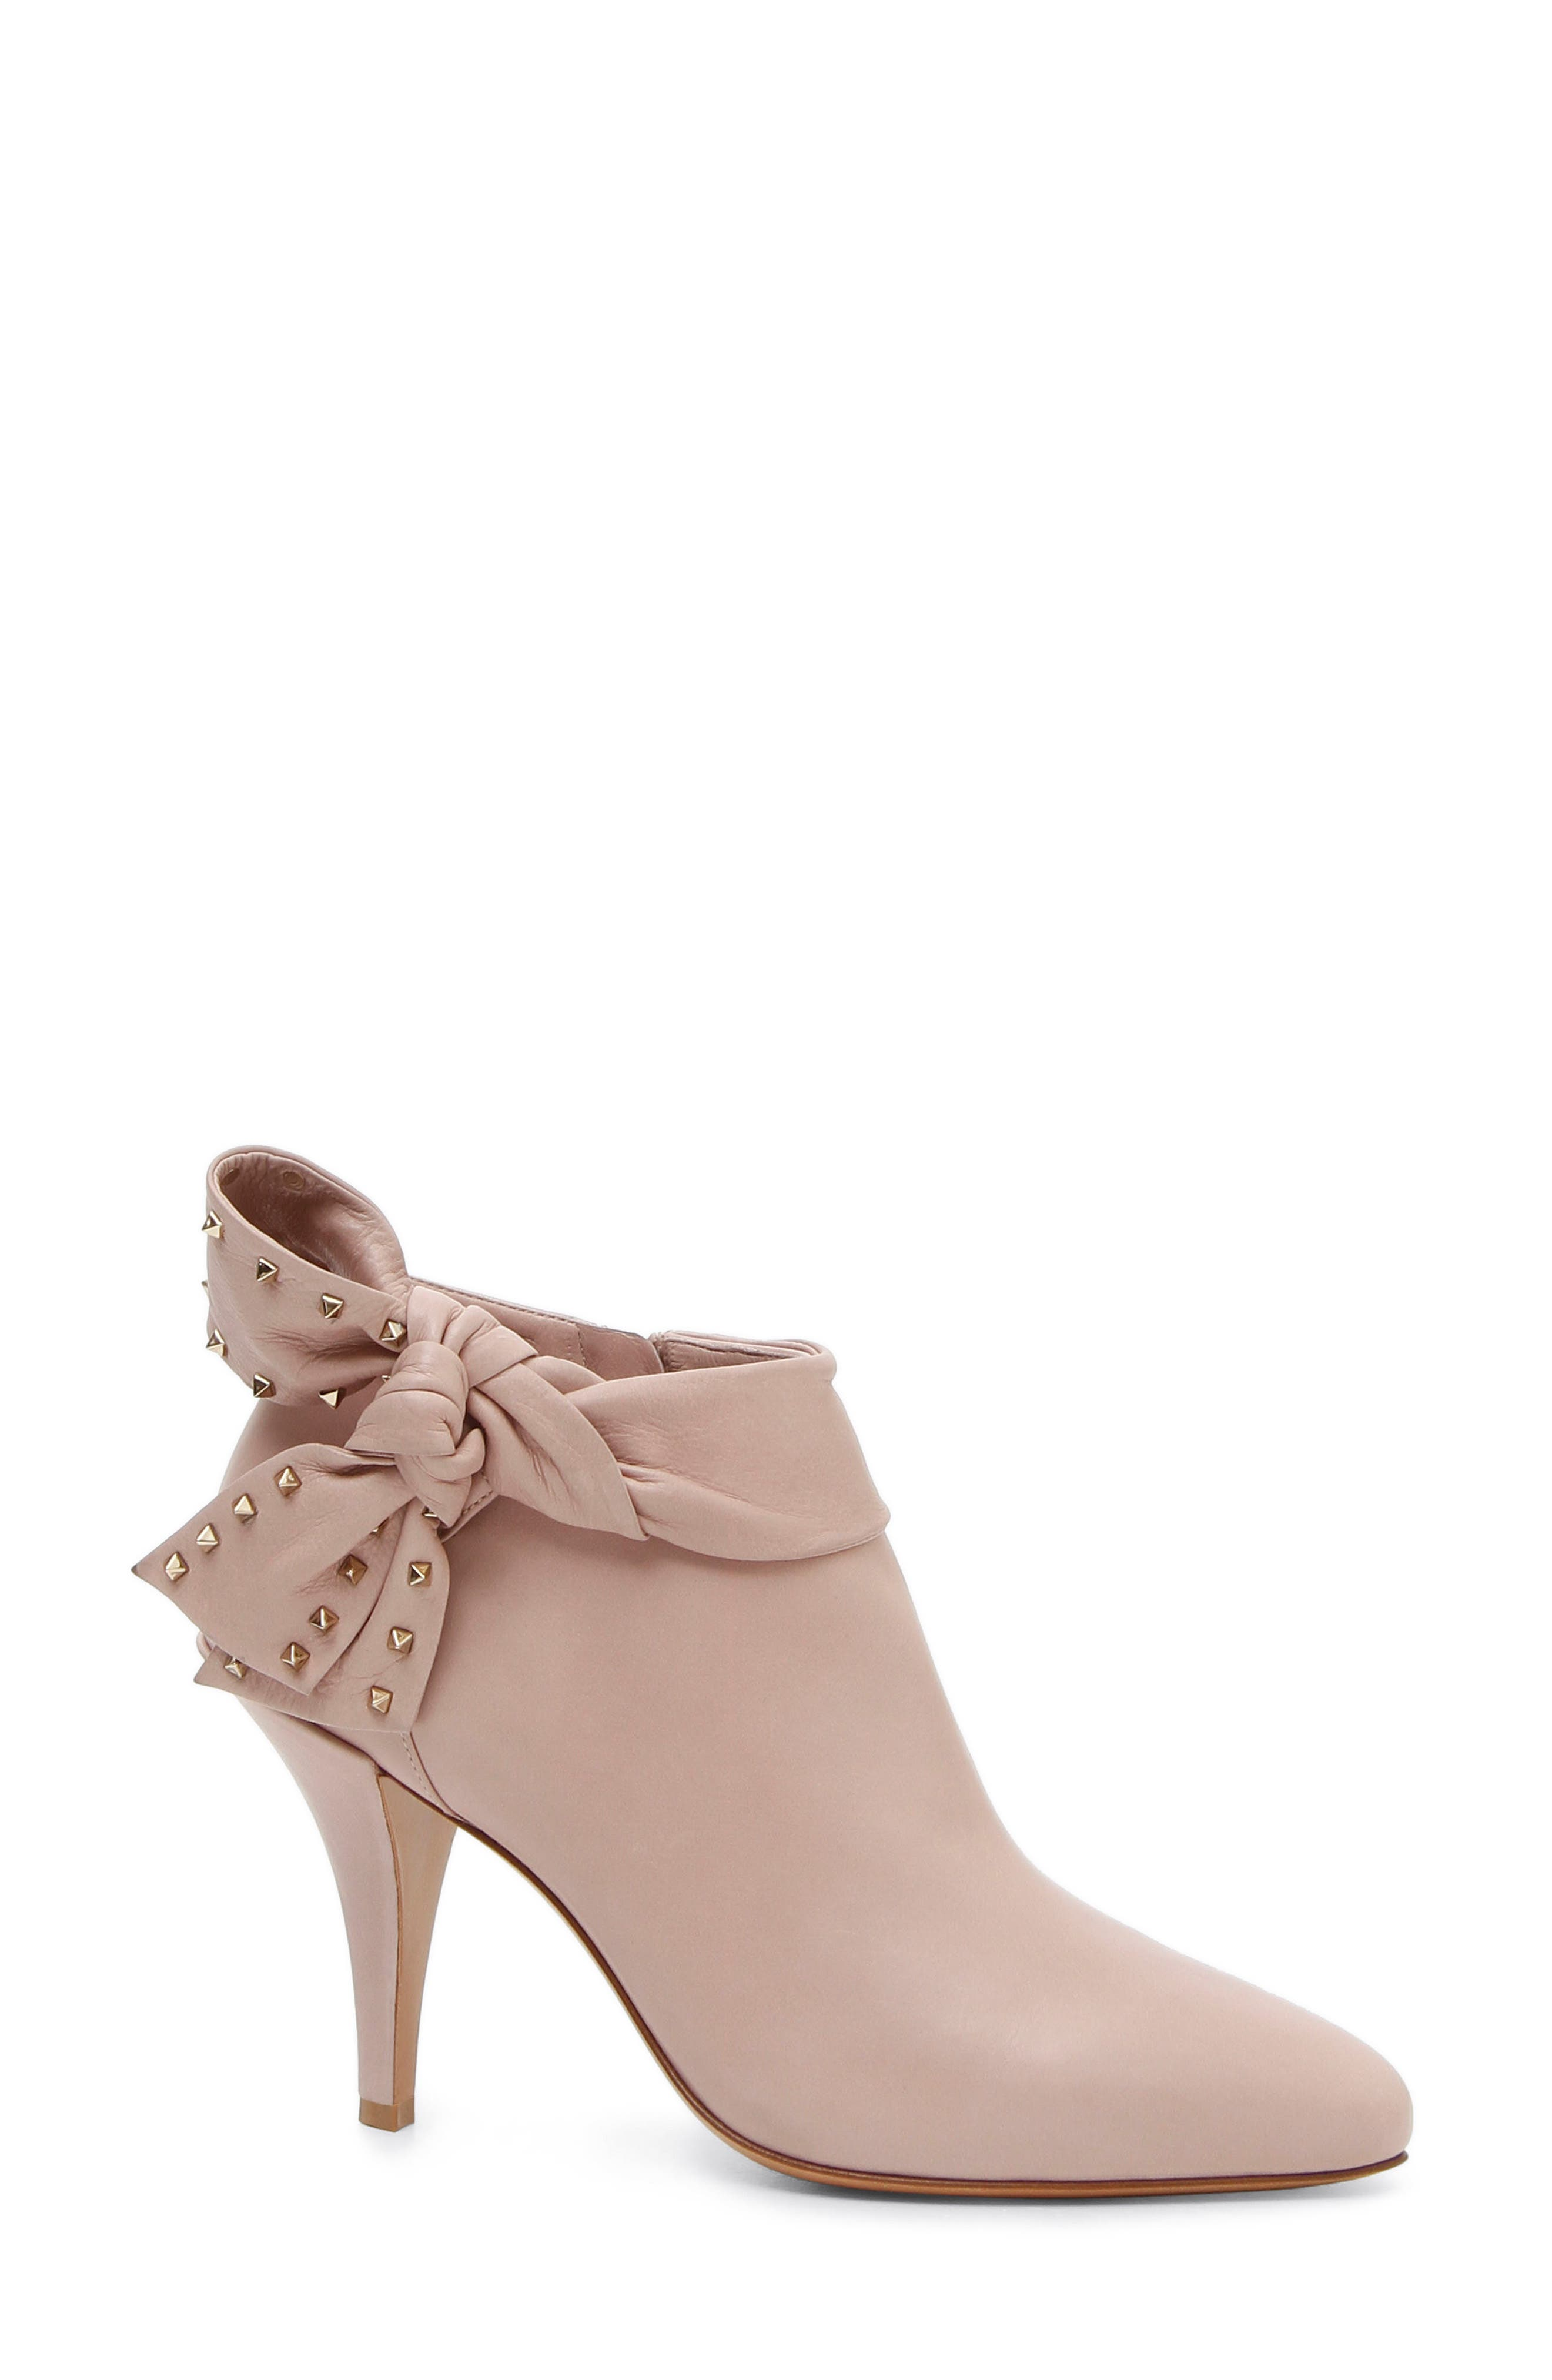 Studded Bow Ankle Bootie,                             Main thumbnail 1, color,                             Poudre